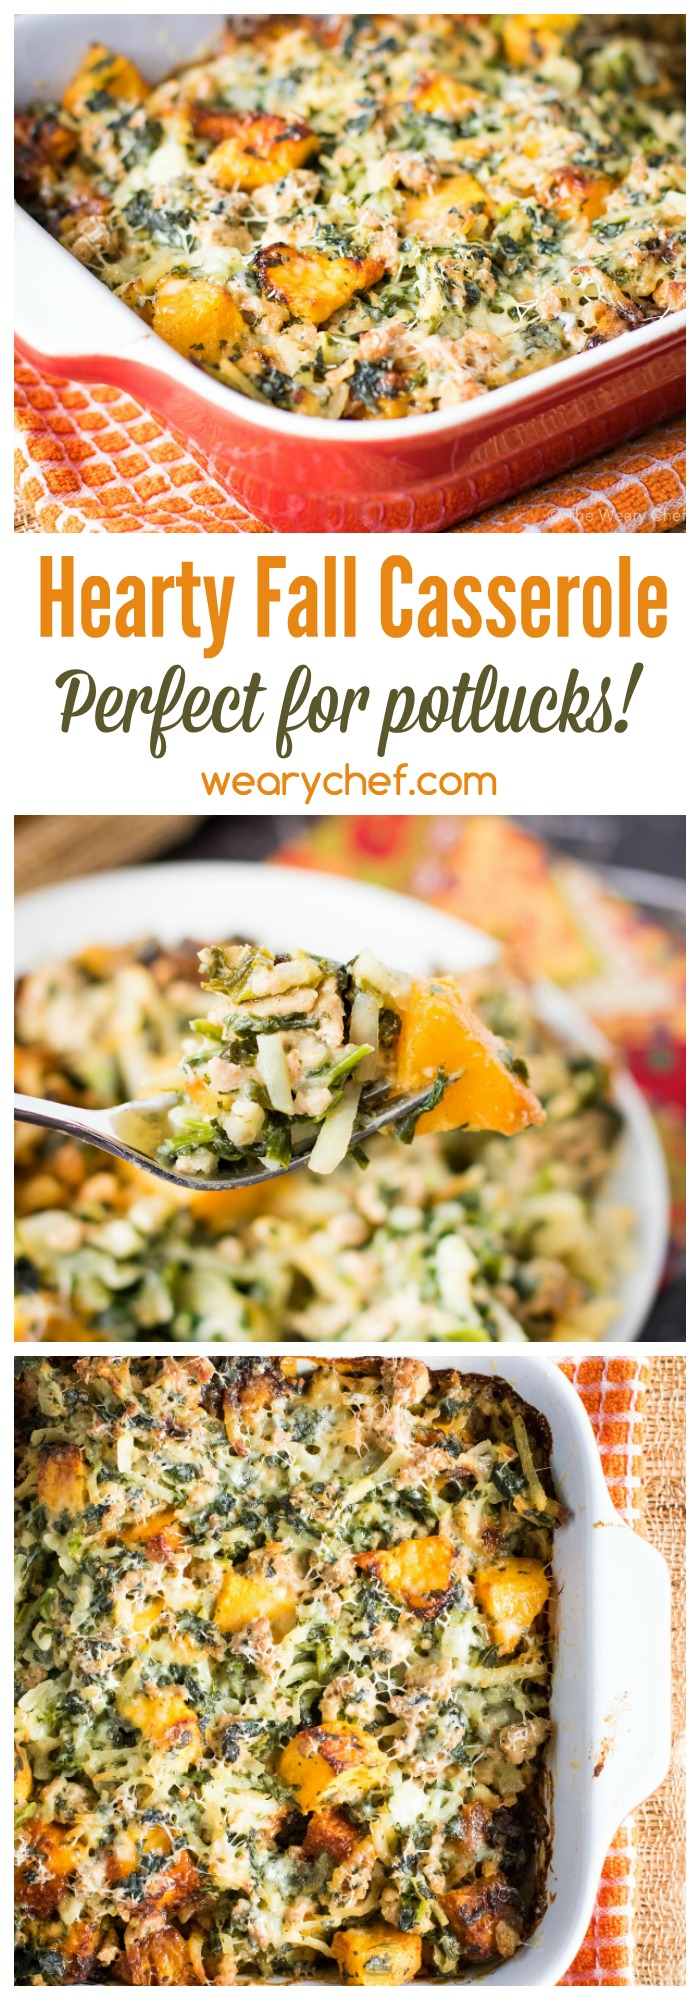 This hearty fall casserole recipe is perfect for potlucks! It's loaded with turkey, hashbrown potatoes and butternut squash for a satisfying, healthy dinner.